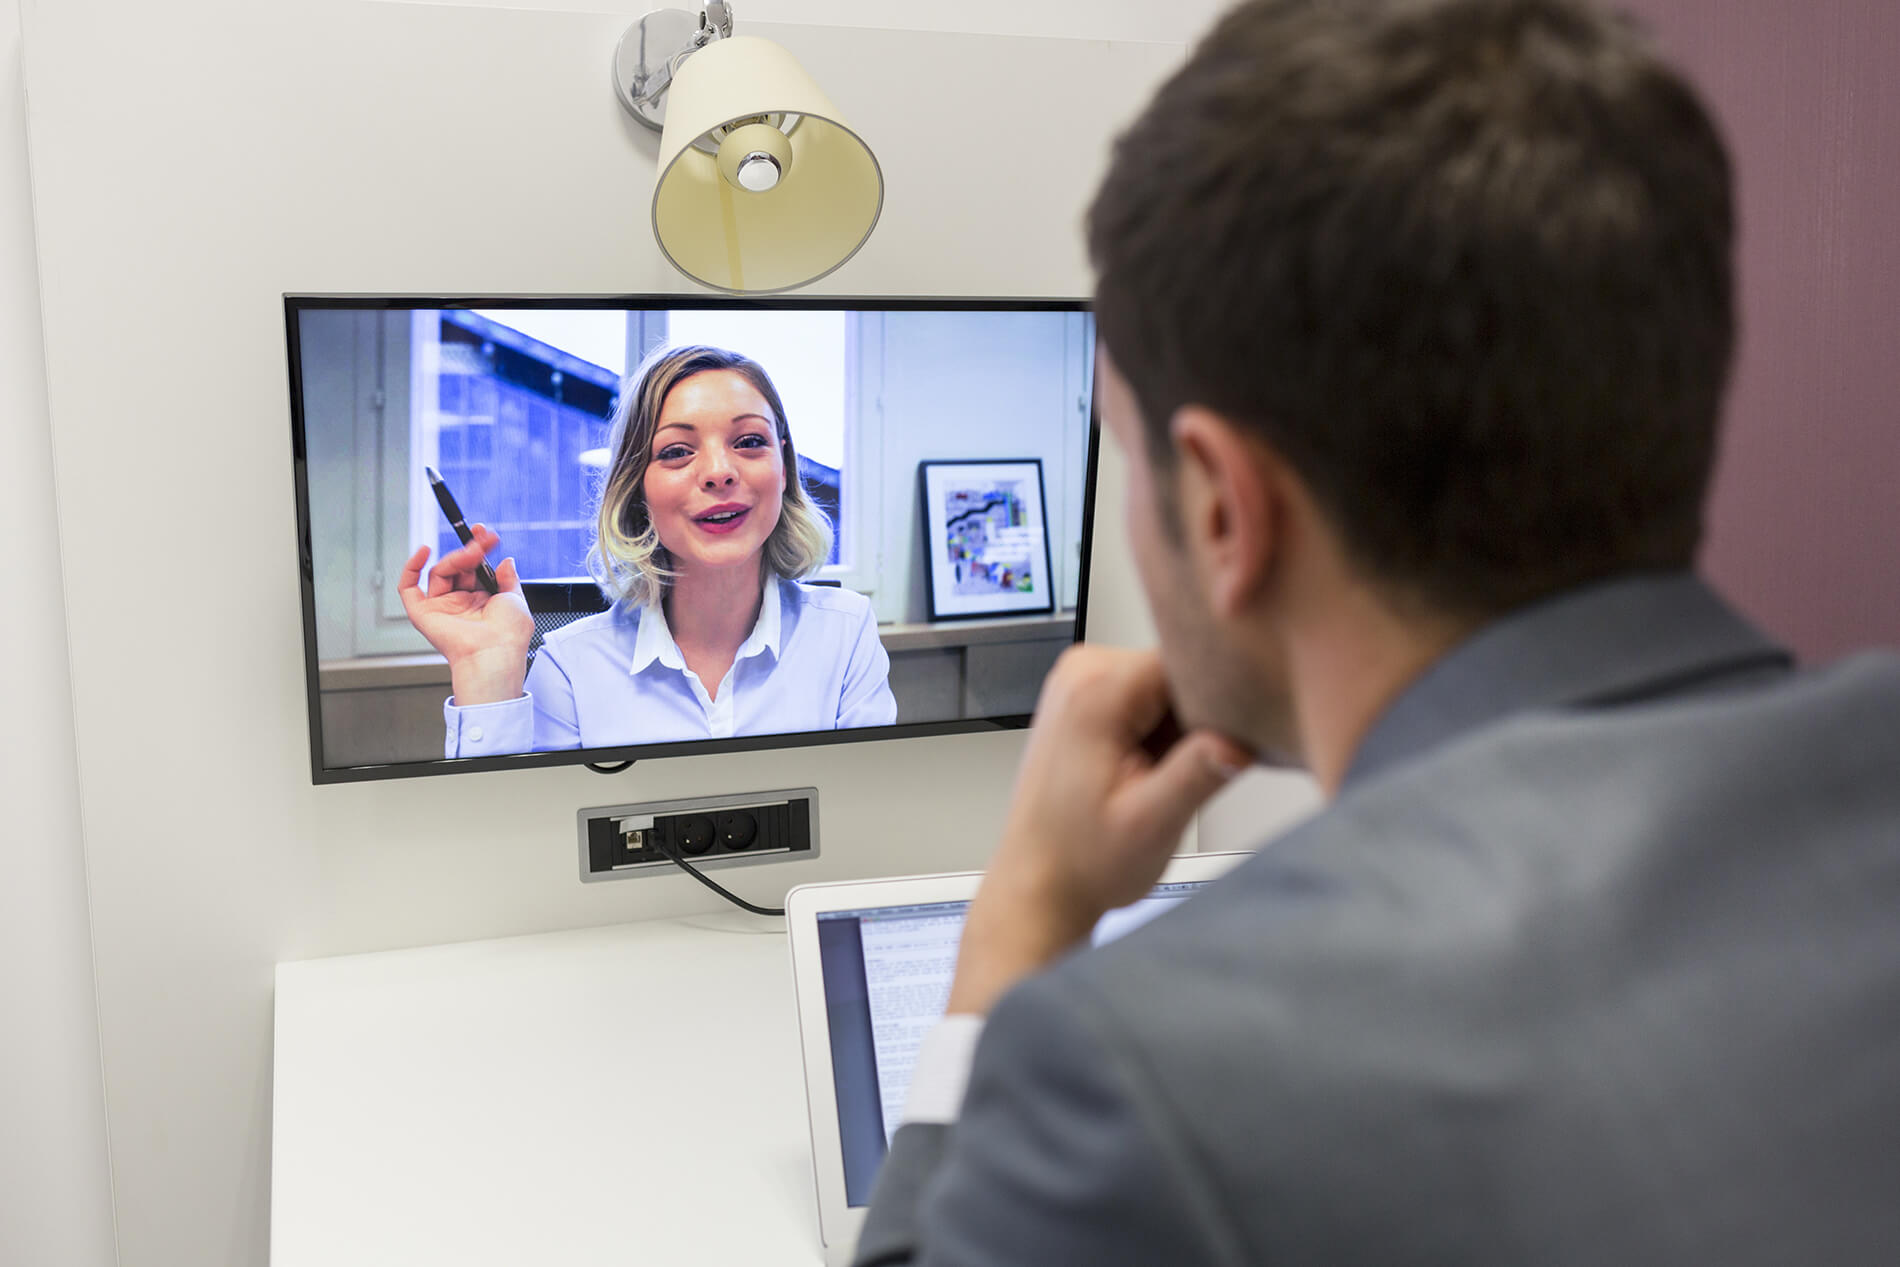 Business woman on video conference demonstrating how to train transcribers in a remote learning office environment